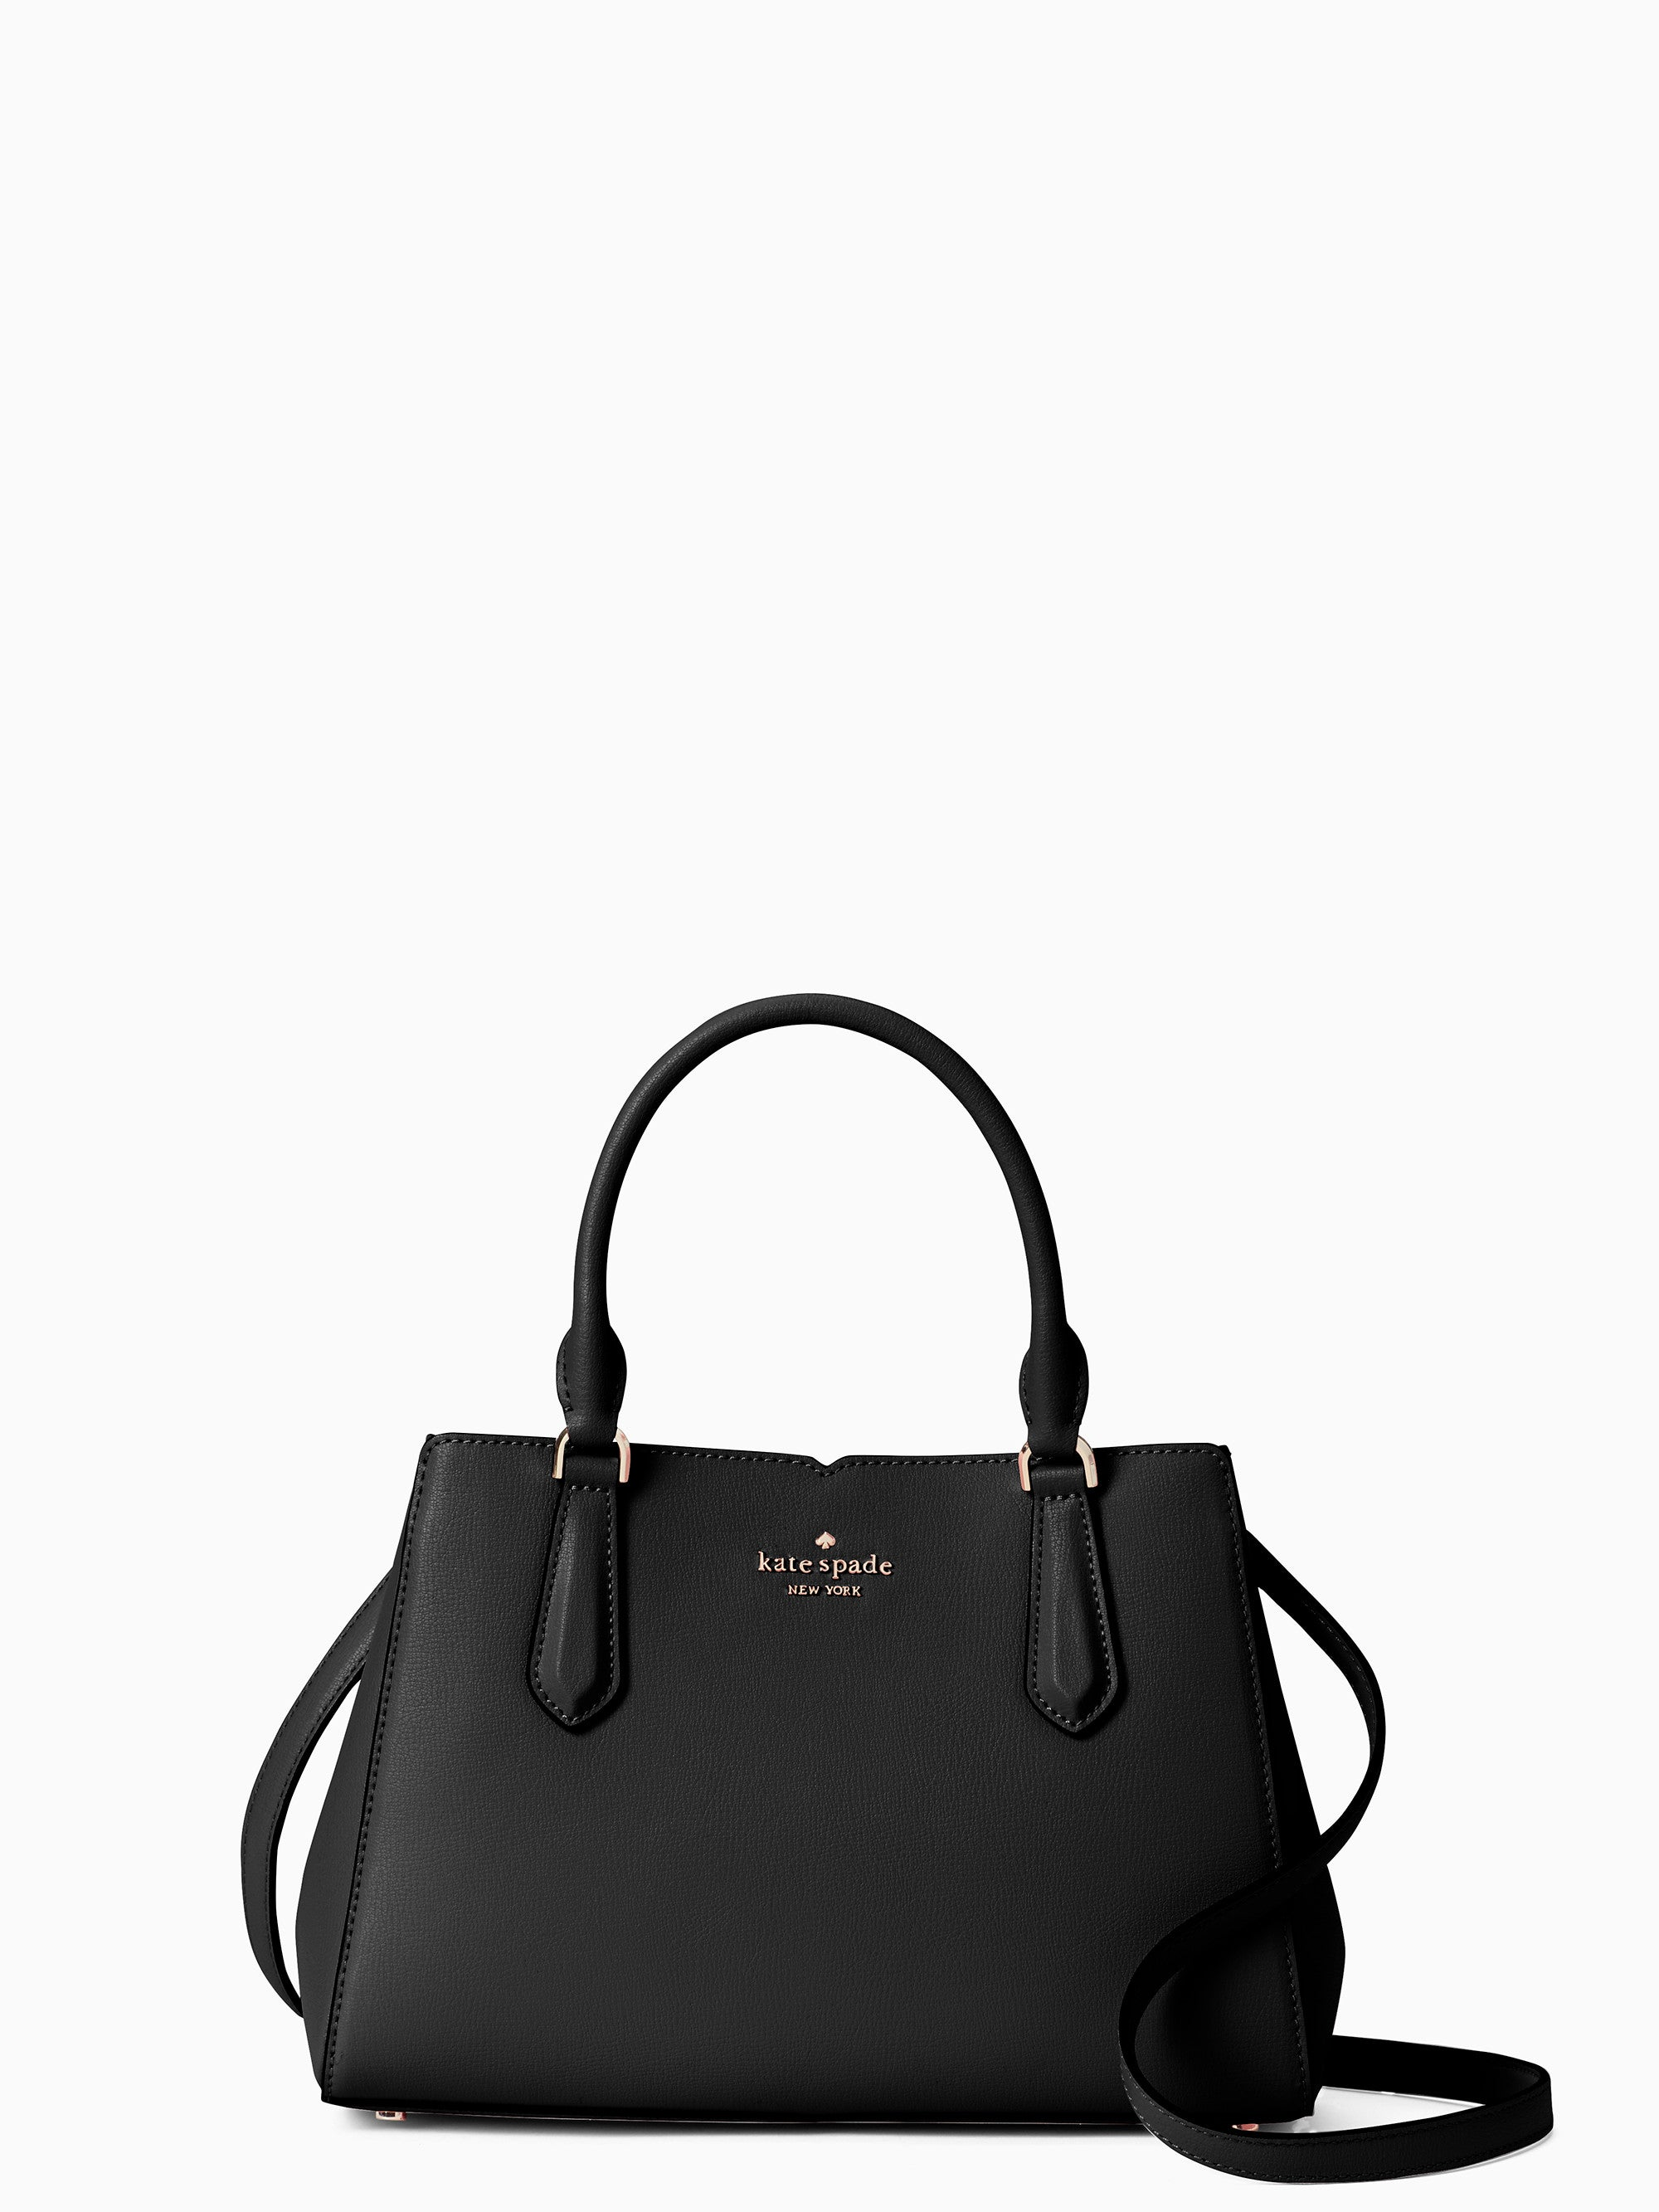 Kate Spade Tippy Sm Triple Compartment Satchel